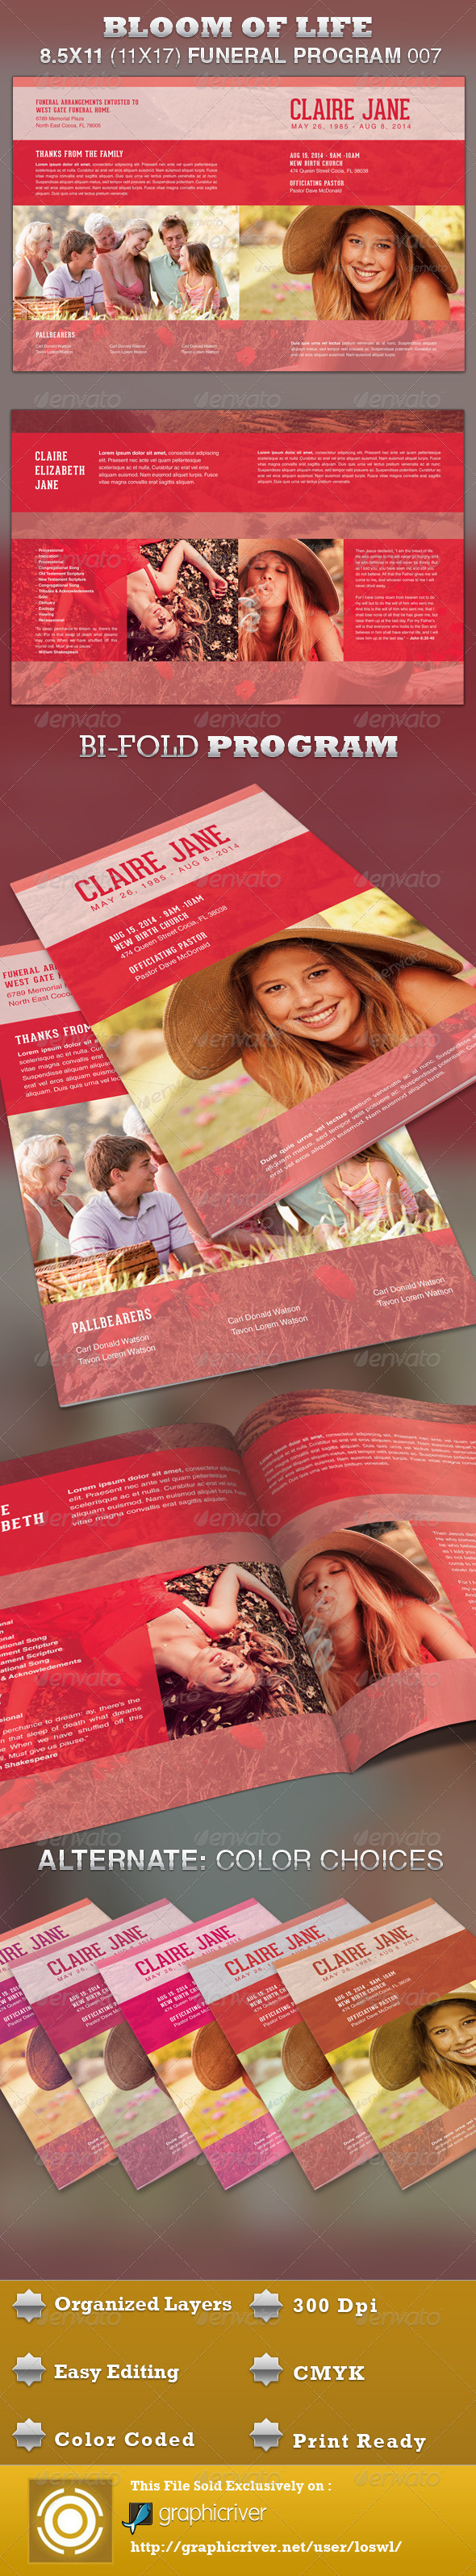 GraphicRiver Bloom of Life Funeral Program Template 007 3842457